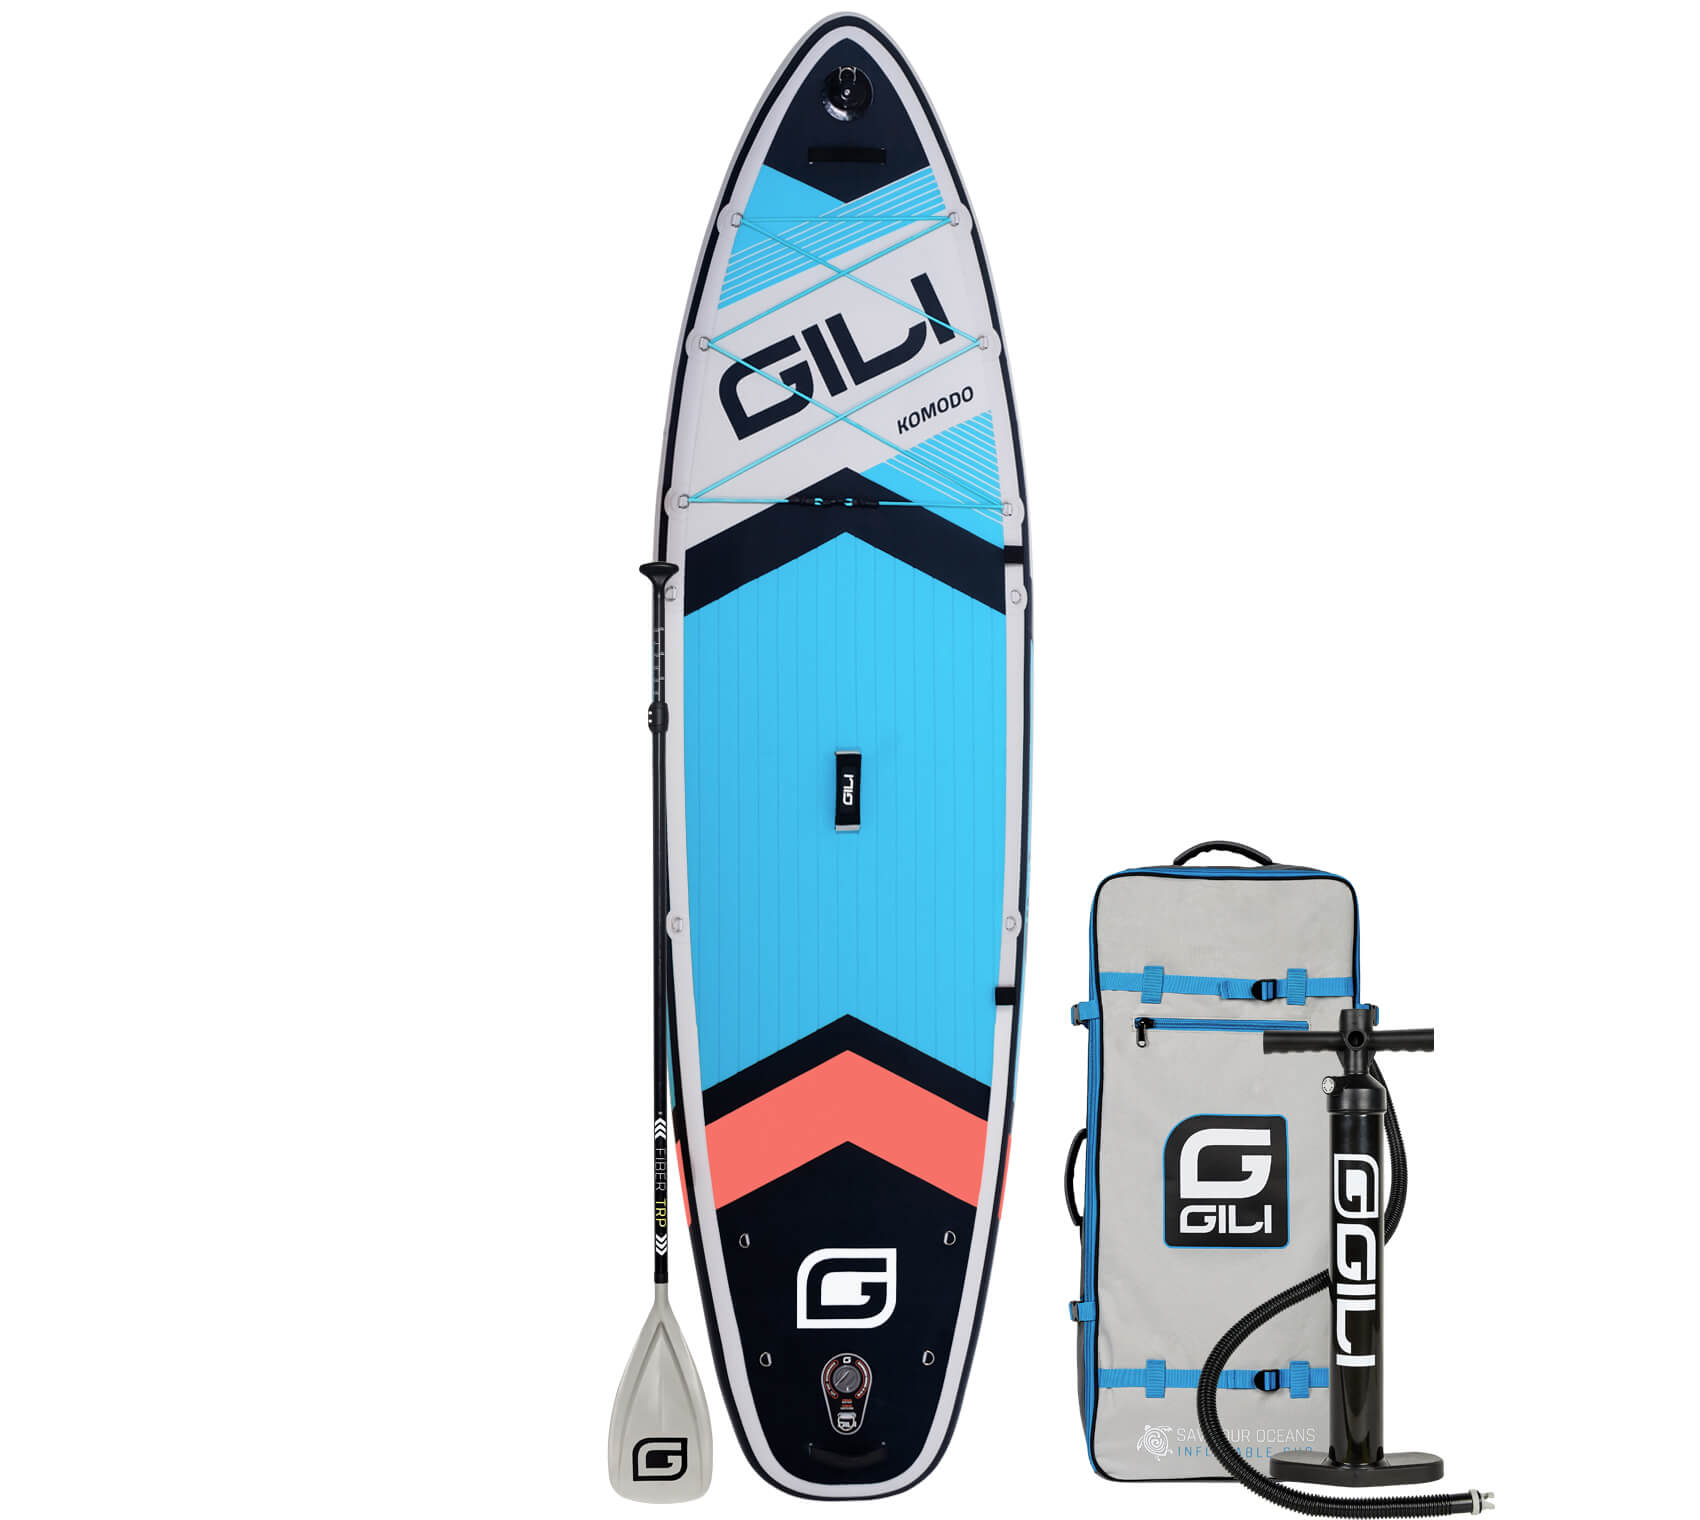 GILI Komodo Inflatable Paddle Board Package